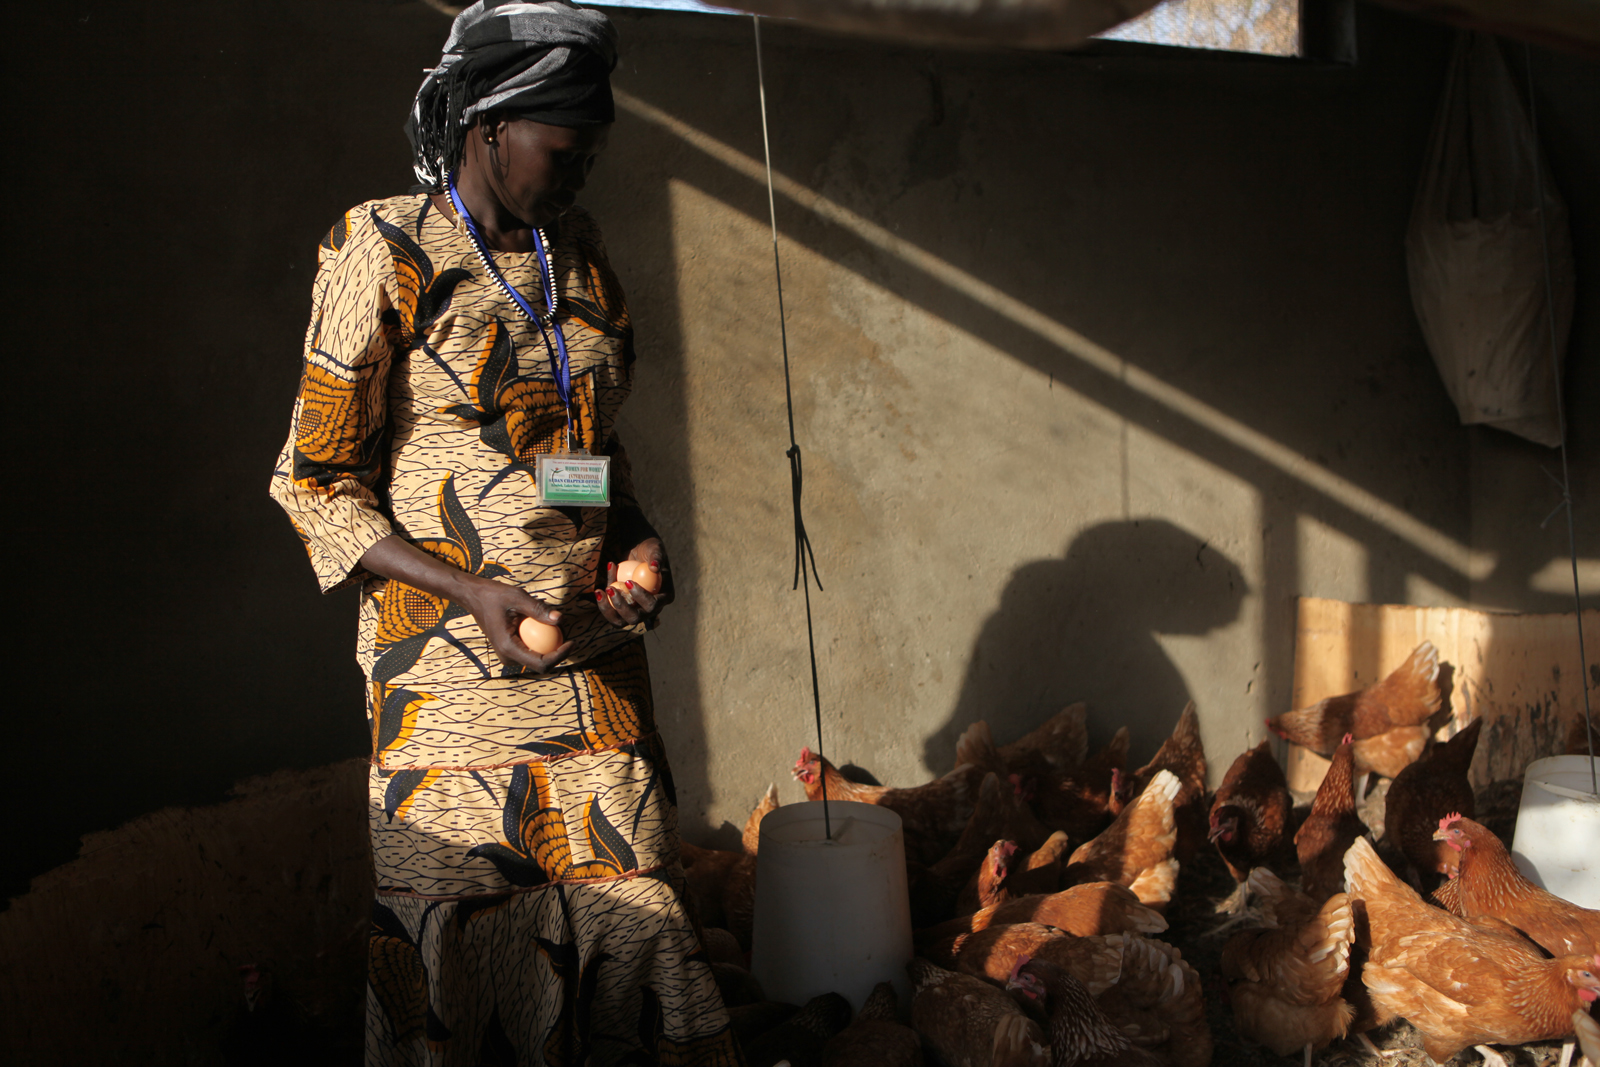 Women for Women International Sudan Chapter runs the Pacong Community Farm for women from Rumbek East, Lakes State, South Sudan. The farm supports vegetable farming, an aviary honey project, livestock and poultry. Women's Trainer Margaret Achol collects eggs from the poultry project.